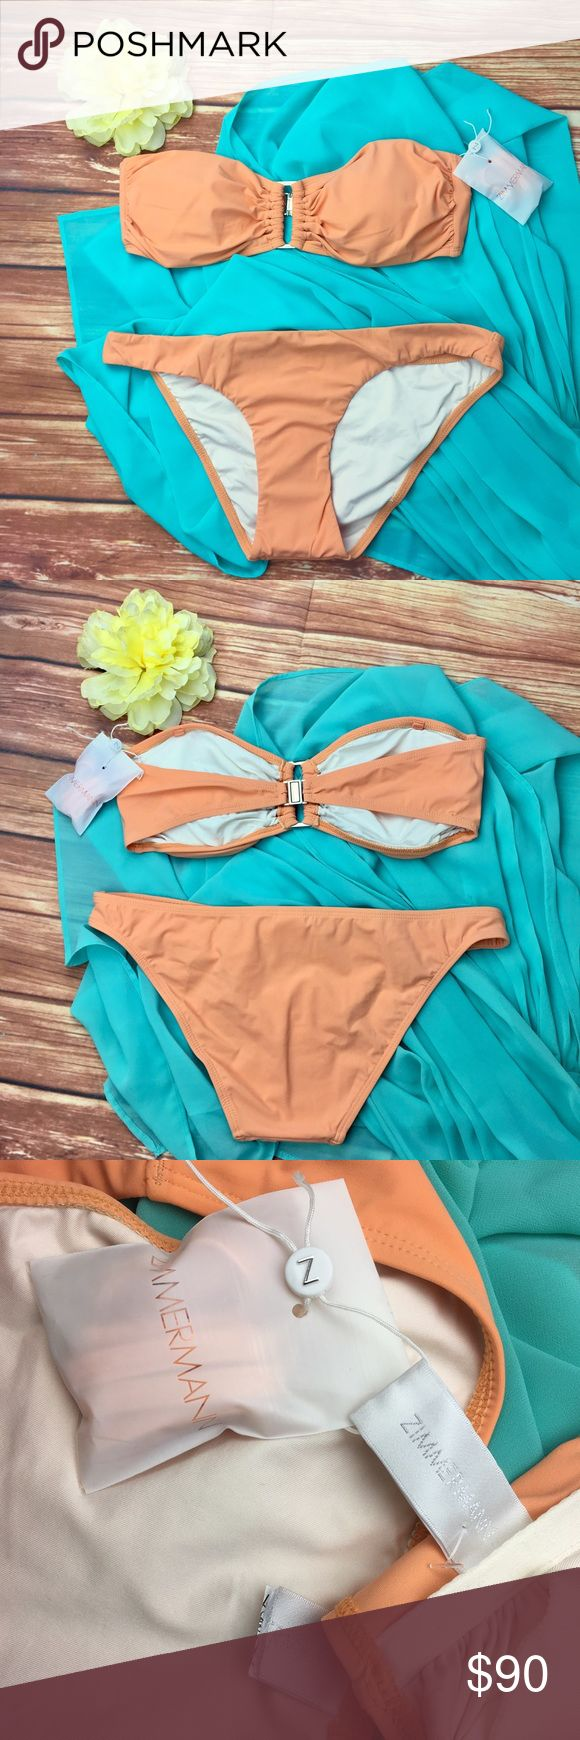 """Zimmermann Sherbet Orange Bandeau Bikini Set Size: Women's 10/12 (Zimmermann brand sizing is #3 = bust 38.9"""", waist 31"""", hips 41.7"""")  Brand: Zimmermann  Condition: New, never worn. Bikini liner intact, never removed.    Peach / Sherbet orange, bandeau bikini top with silver metal details. Lightly padded with removable pads. Straps included.  Tags on bikini bottoms were cut to prevent store returns. Does not affect appearance of bikini.    Fabric: shell 80% Polyester, 20% Elastane; lining 90%…"""